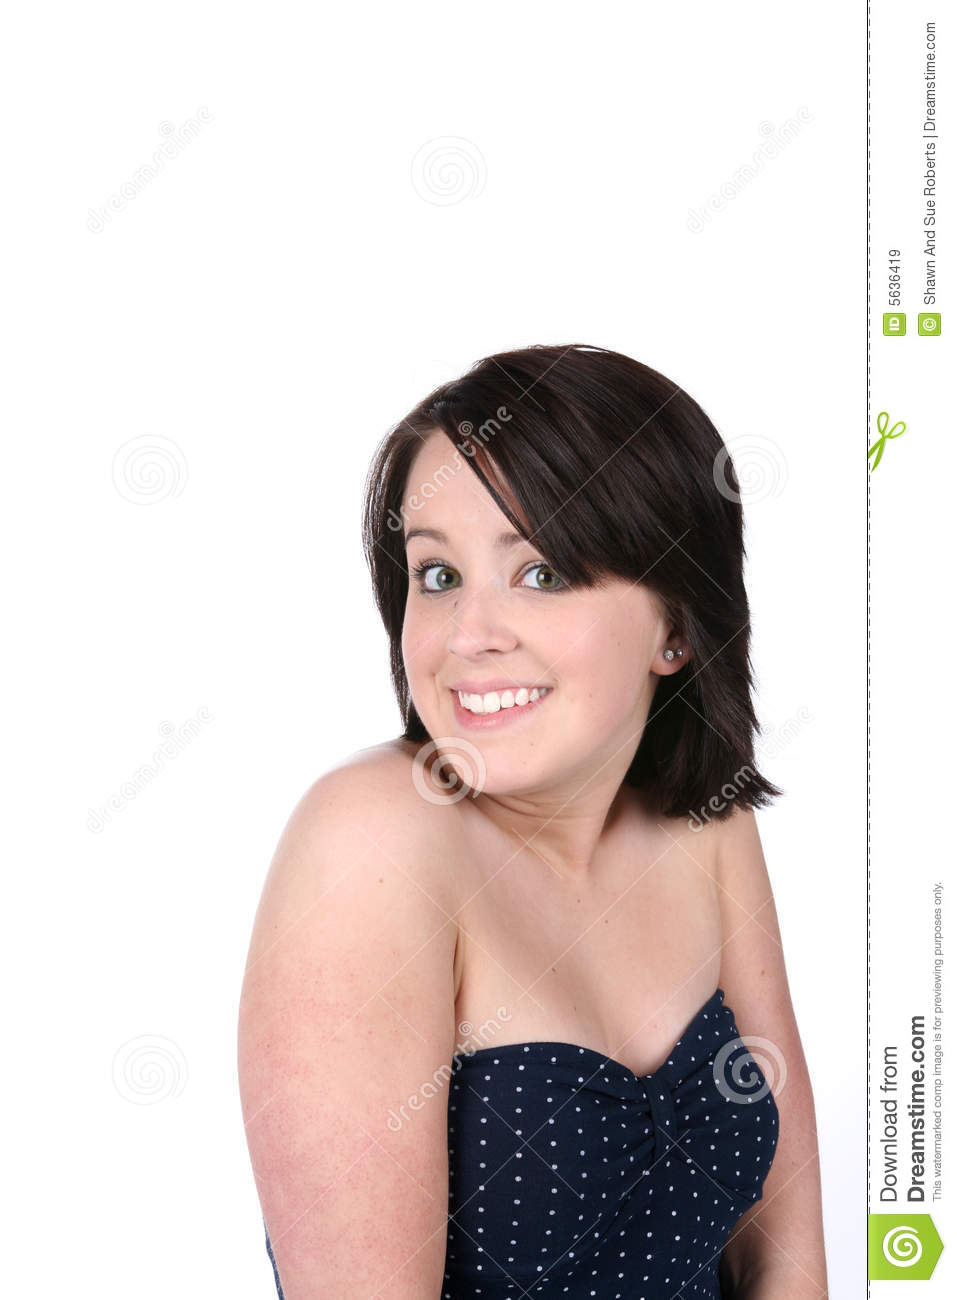 Topless plus size models